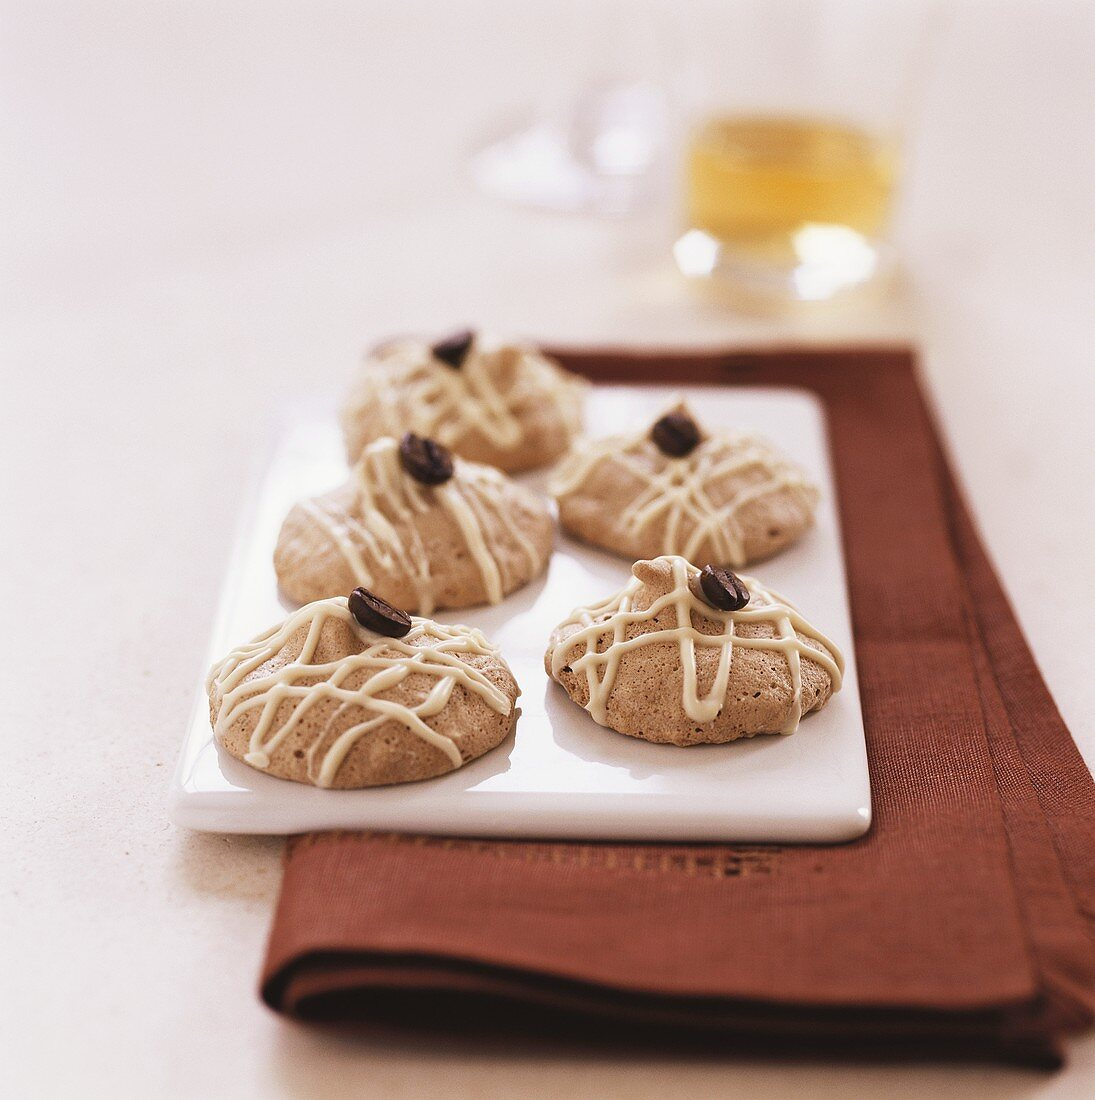 Coffee macaroons with mocha beans